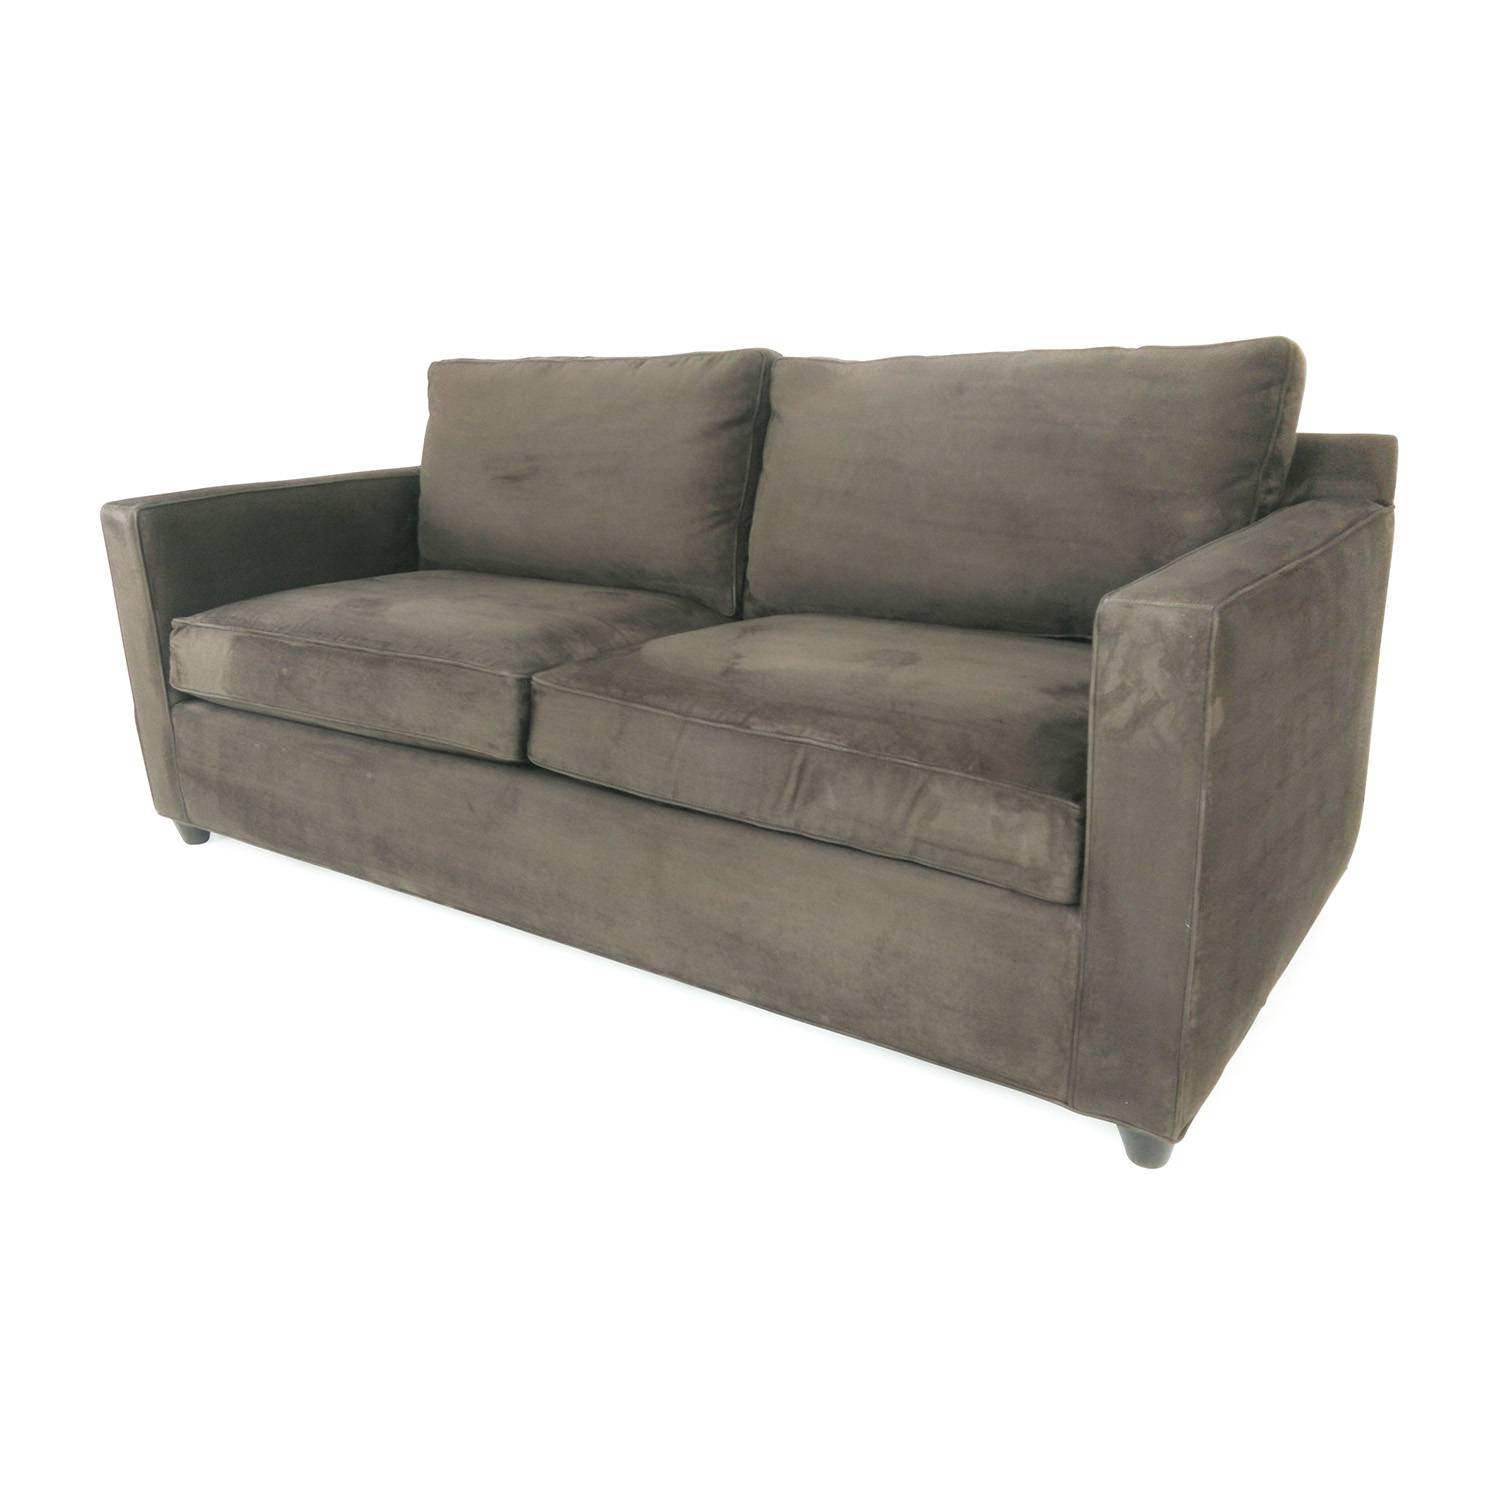 57% Off   Crate And Barrel Crate & Barrel Davis Sofa / Sofas Intended For Davis Sofas (Photo 8 of 15)